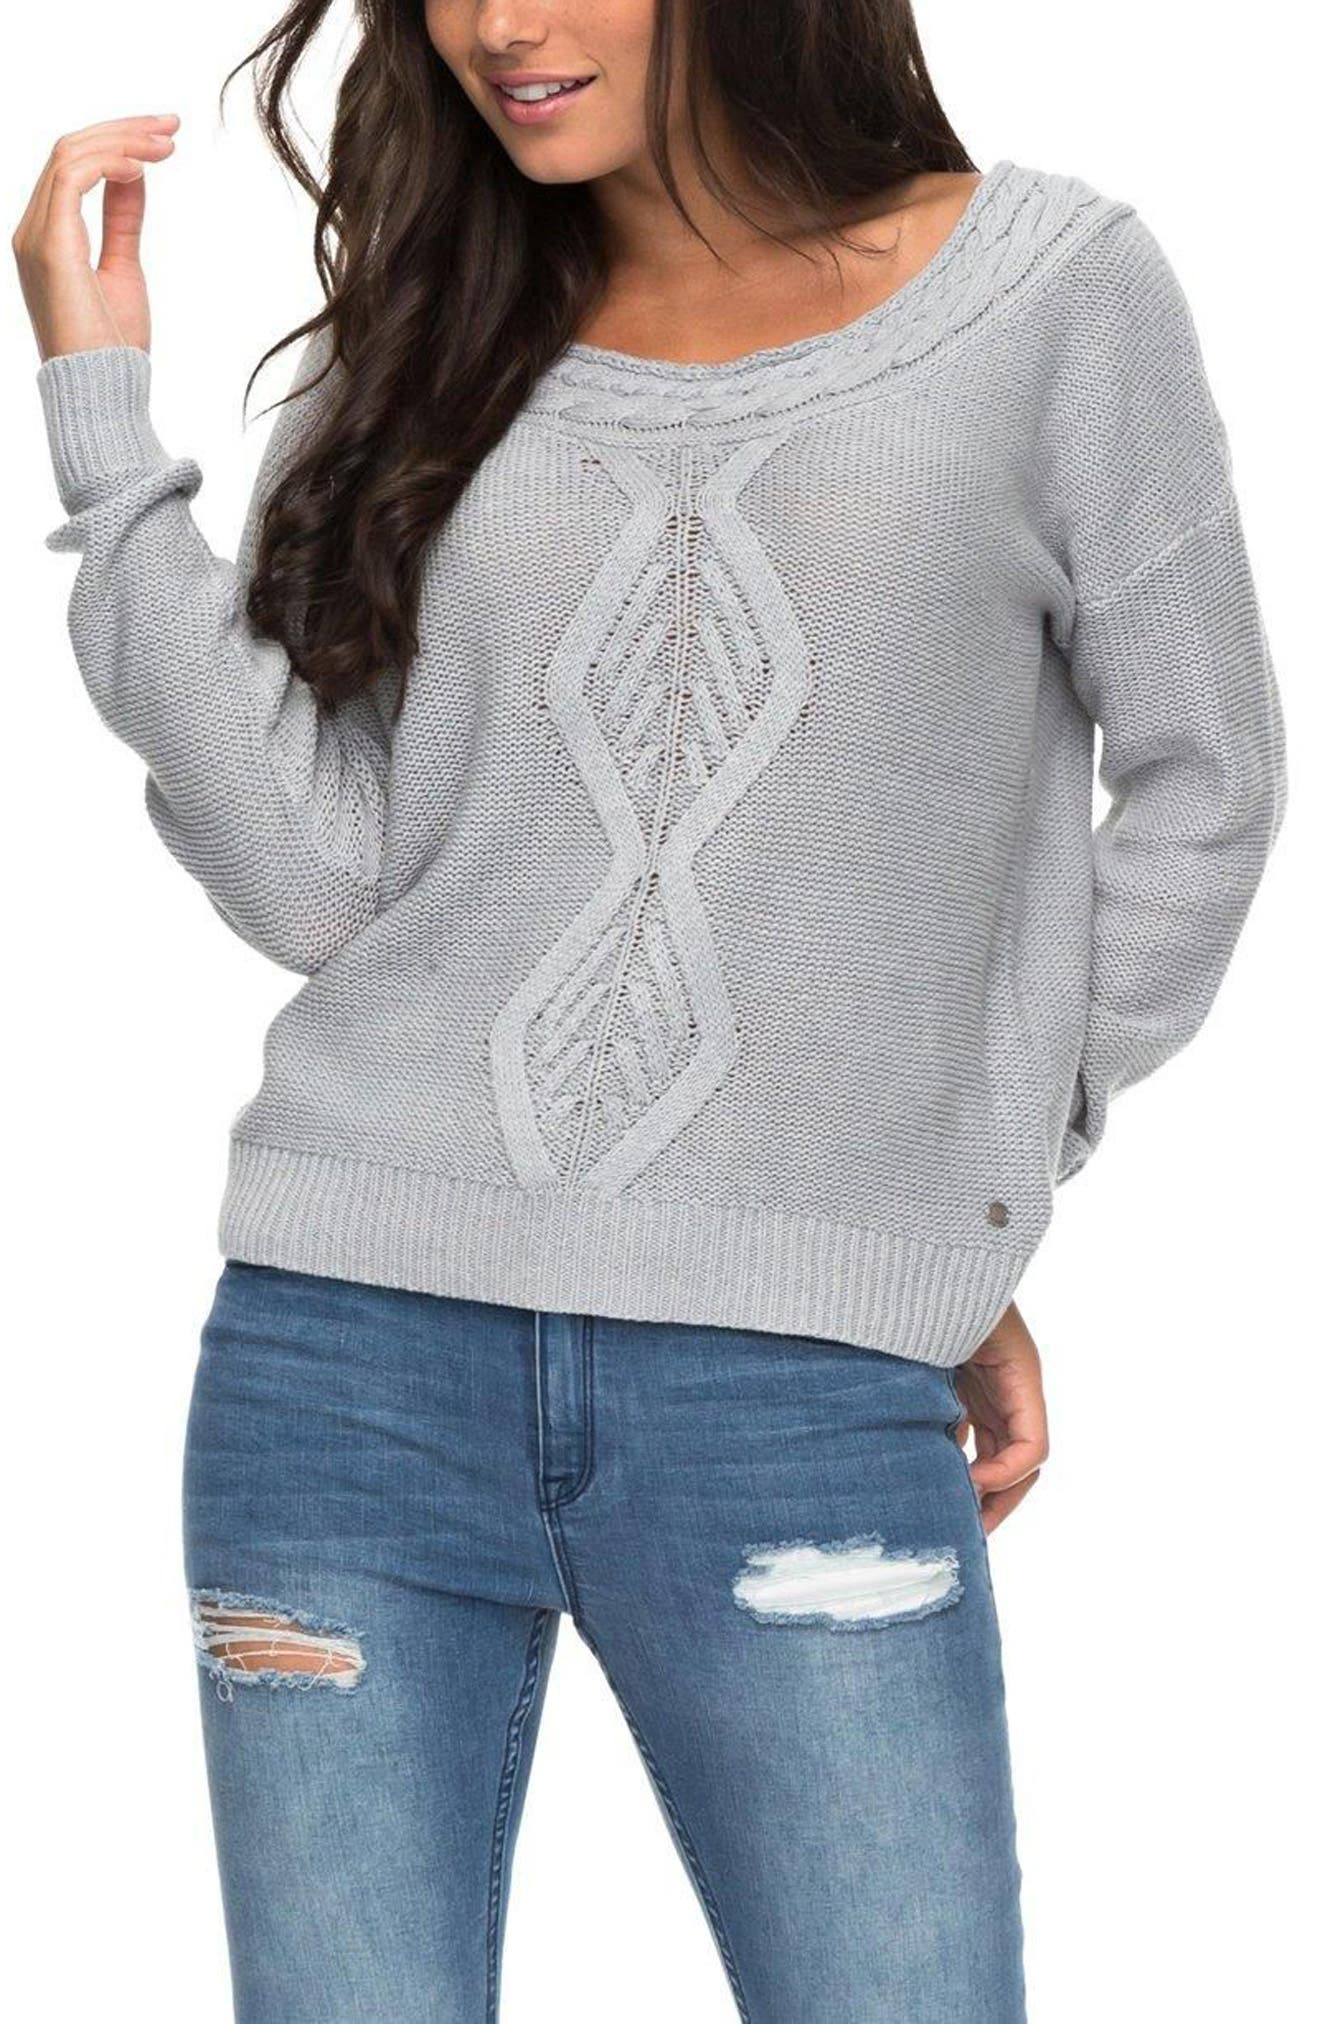 Choose to Shine Sweater,                         Main,                         color, Heritage Heather